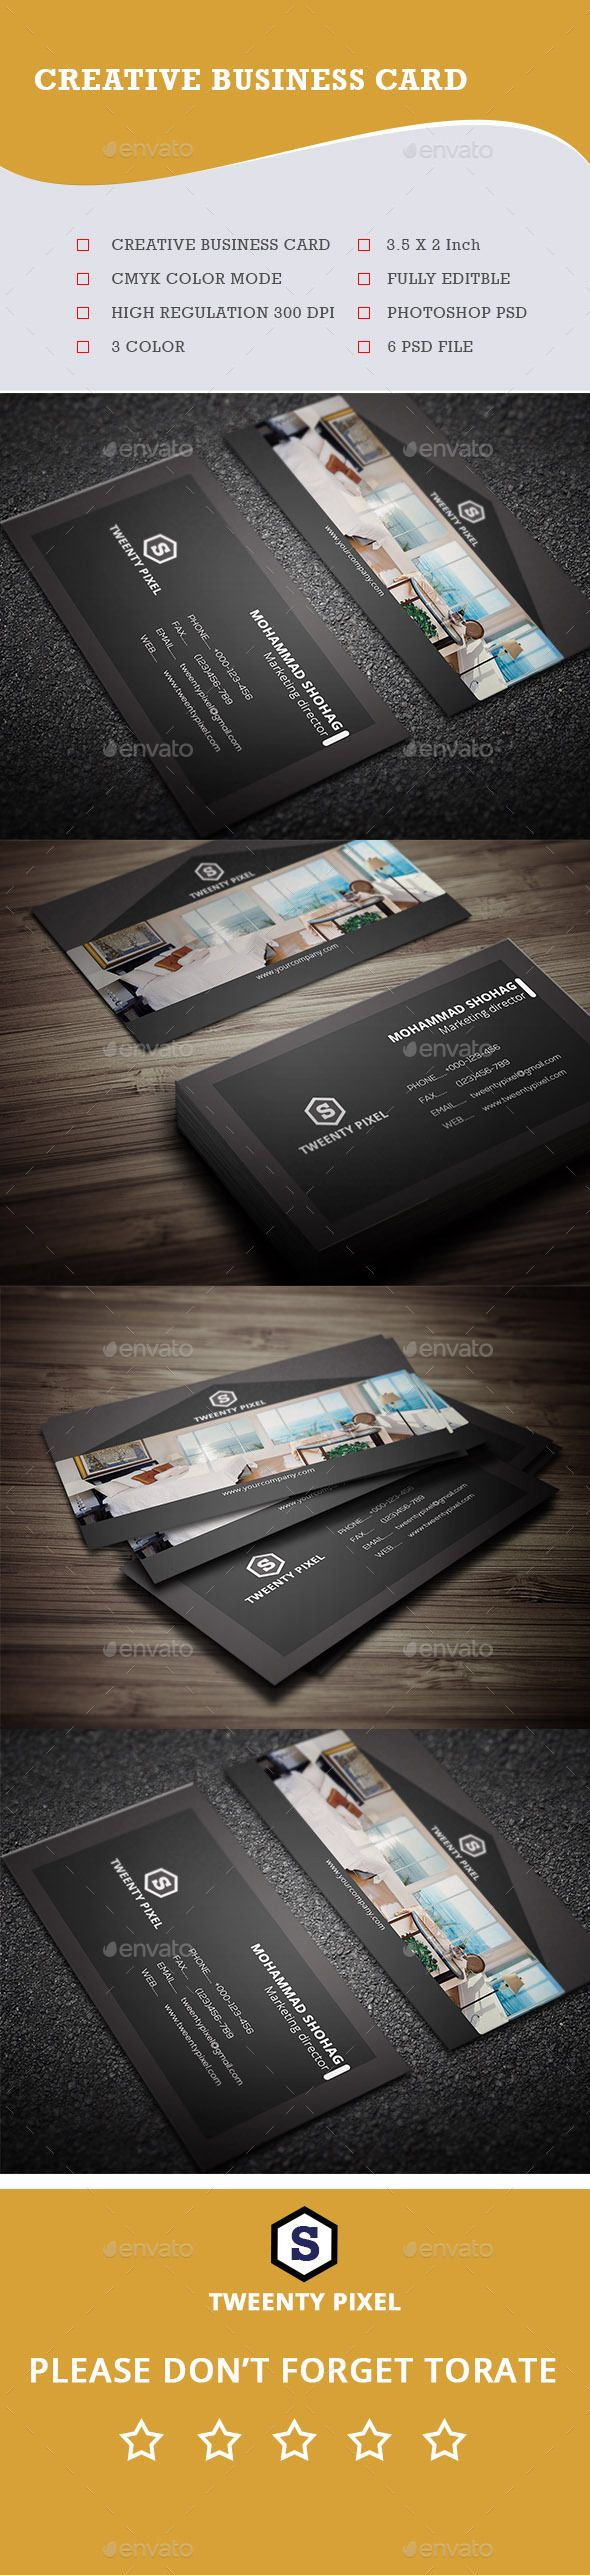 128 best Real Estate Business cards images on Pinterest | Business ...